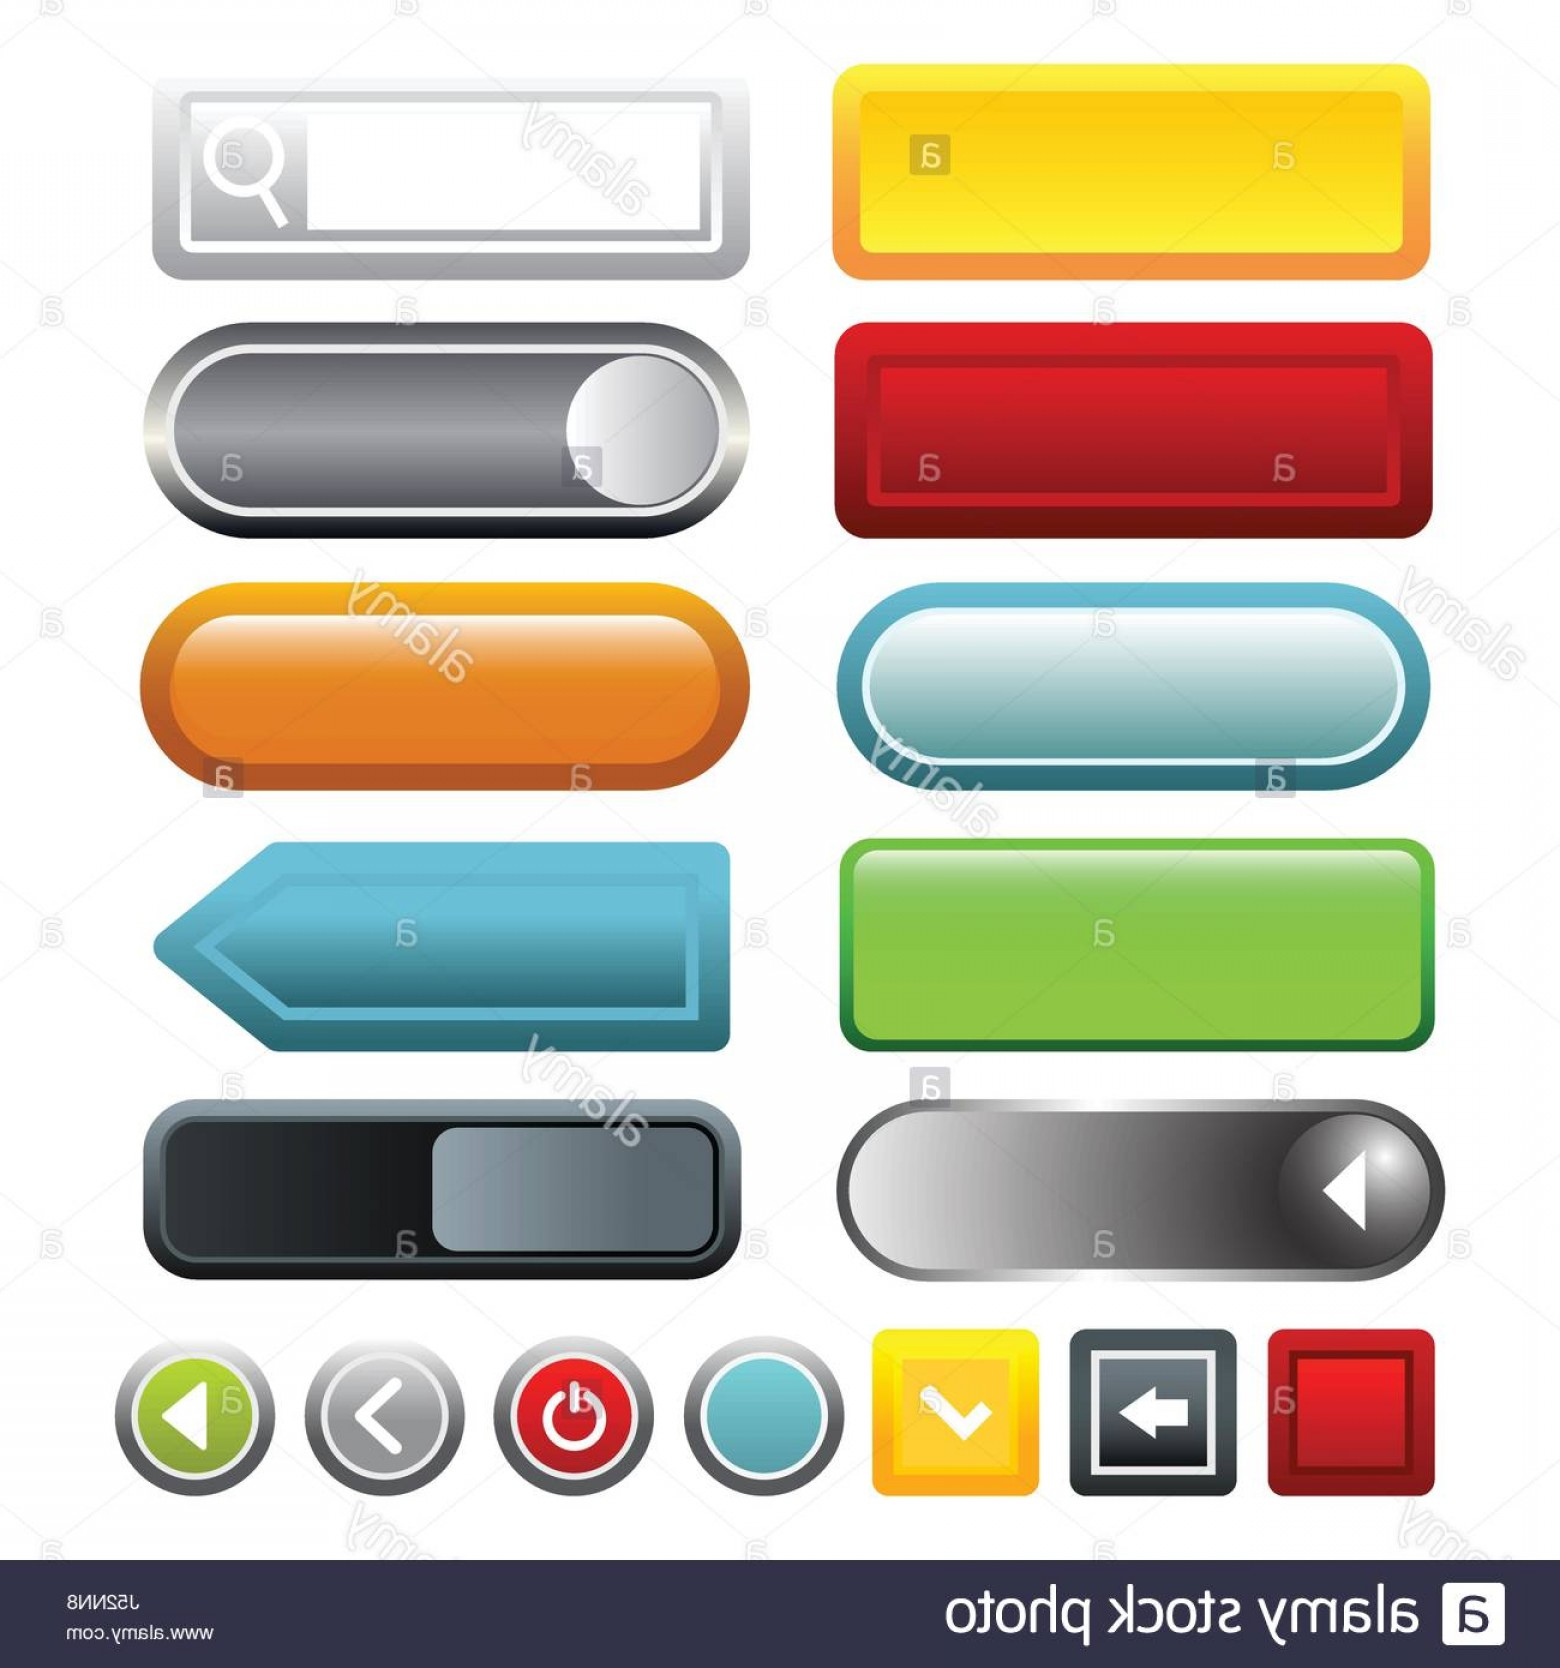 Web Buttons Vector: Stock Photo Colorful Gradient Blank Web Buttons Icons Set Cartoon Illustration